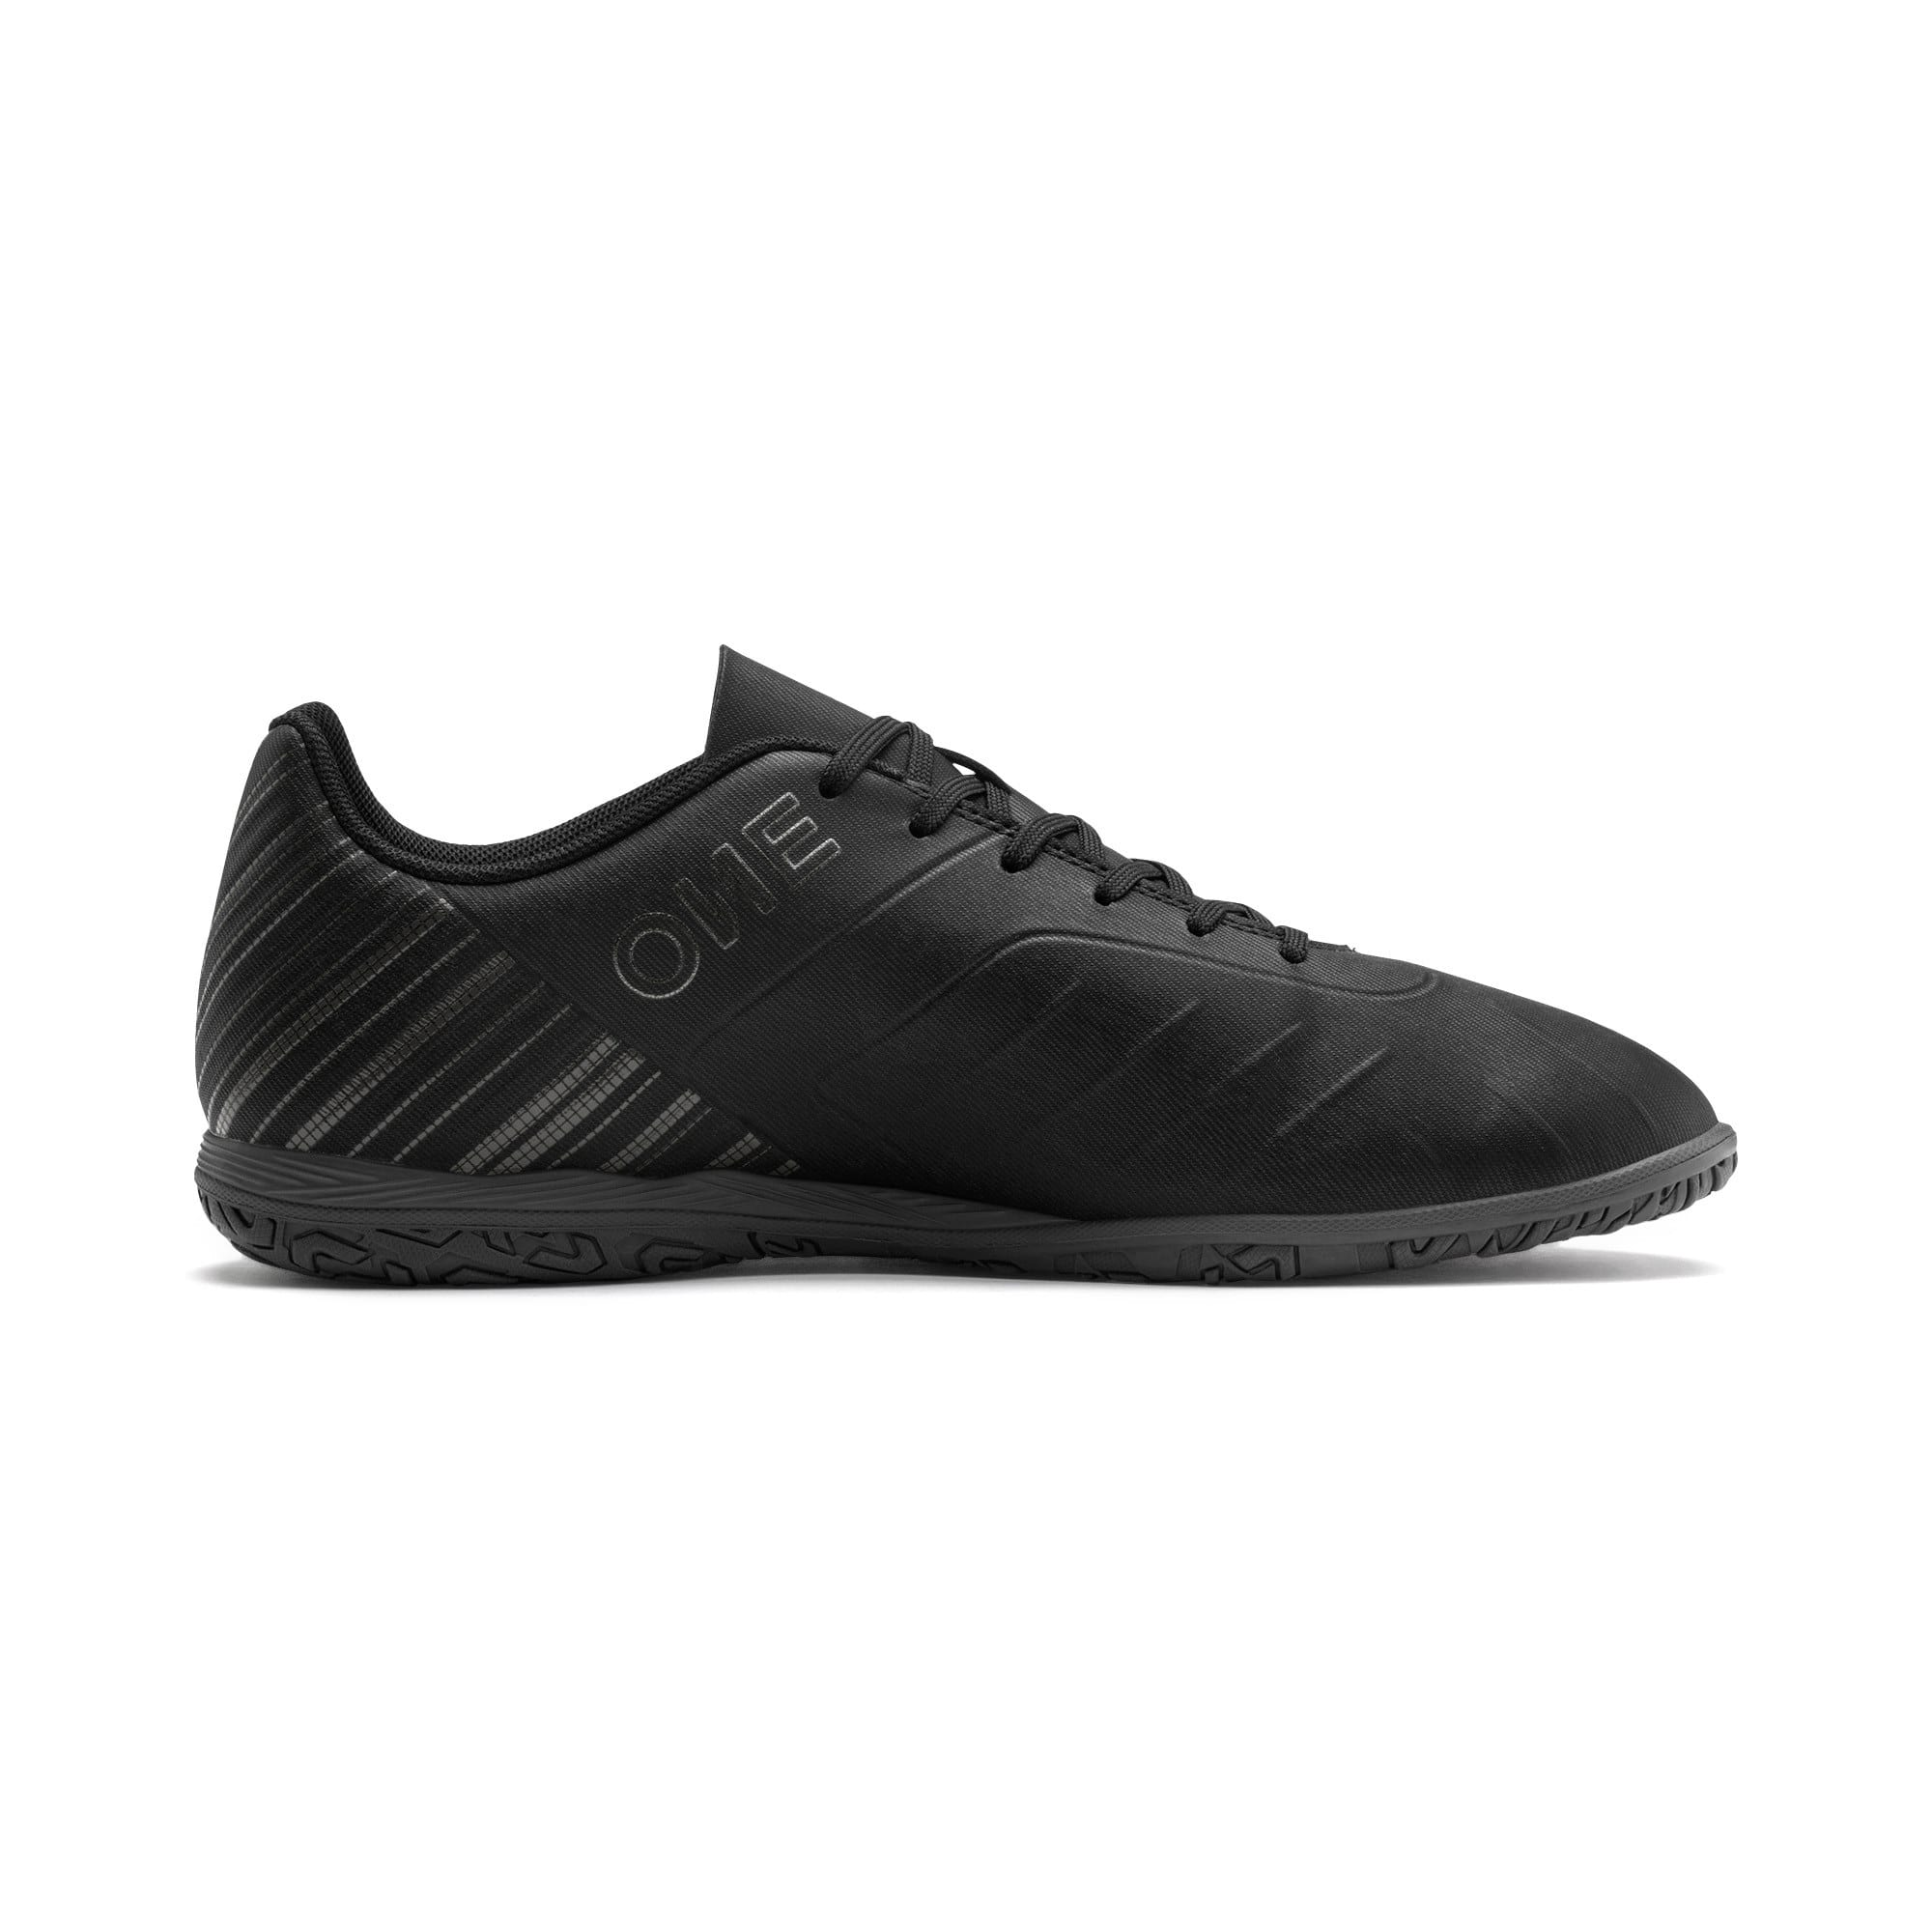 Thumbnail 6 of PUMA ONE 5.4 IT Herren Fußballschuhe, Black-Black-Puma Aged Silver, medium